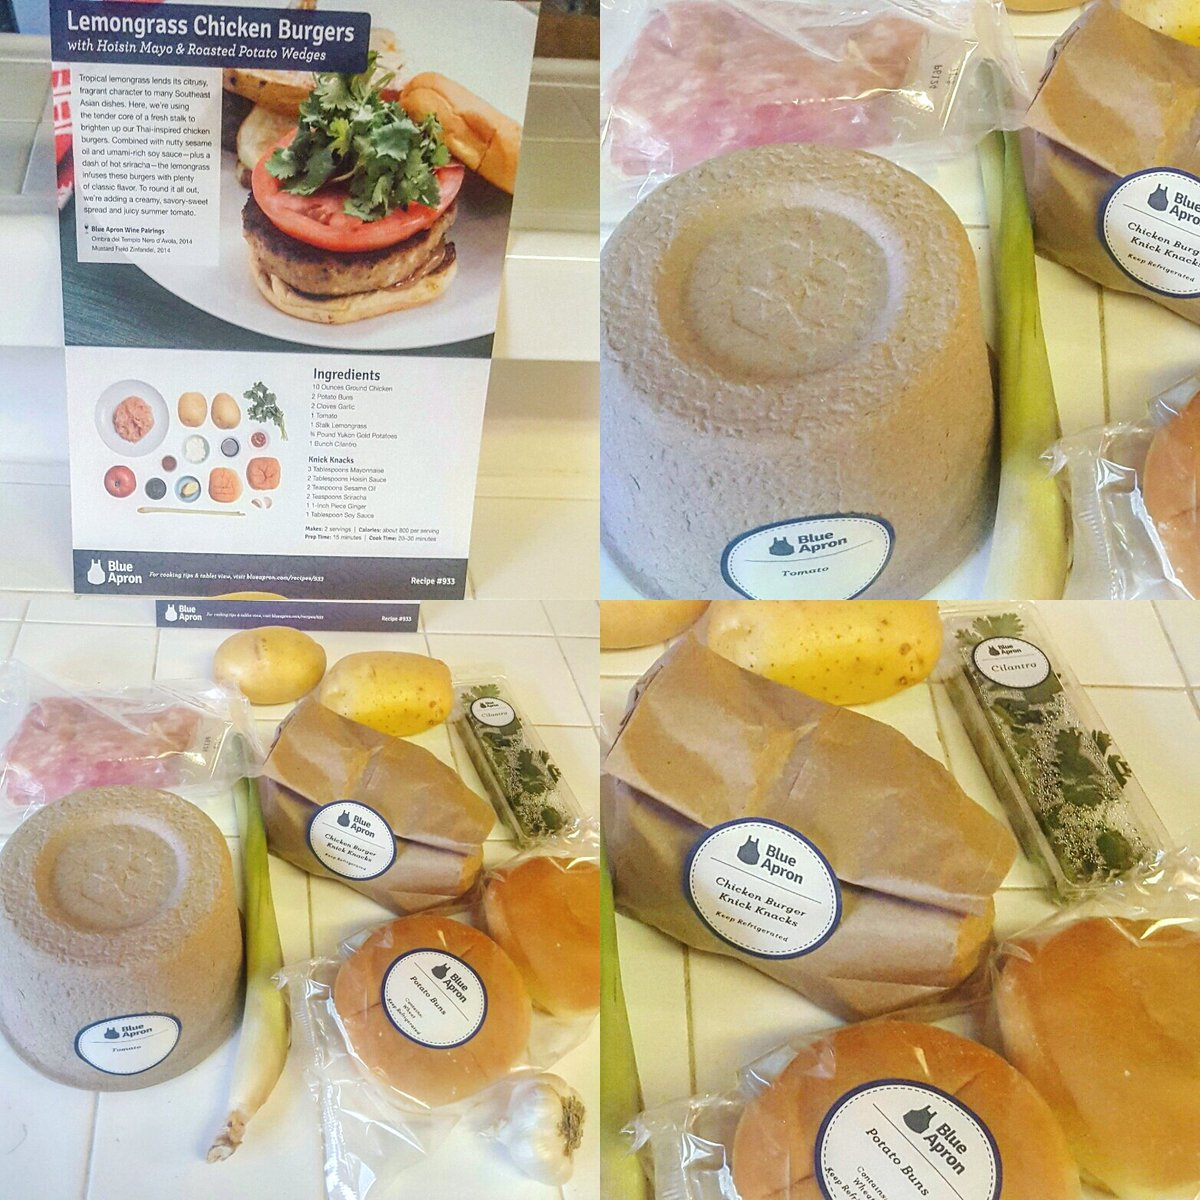 Blue apron lemongrass